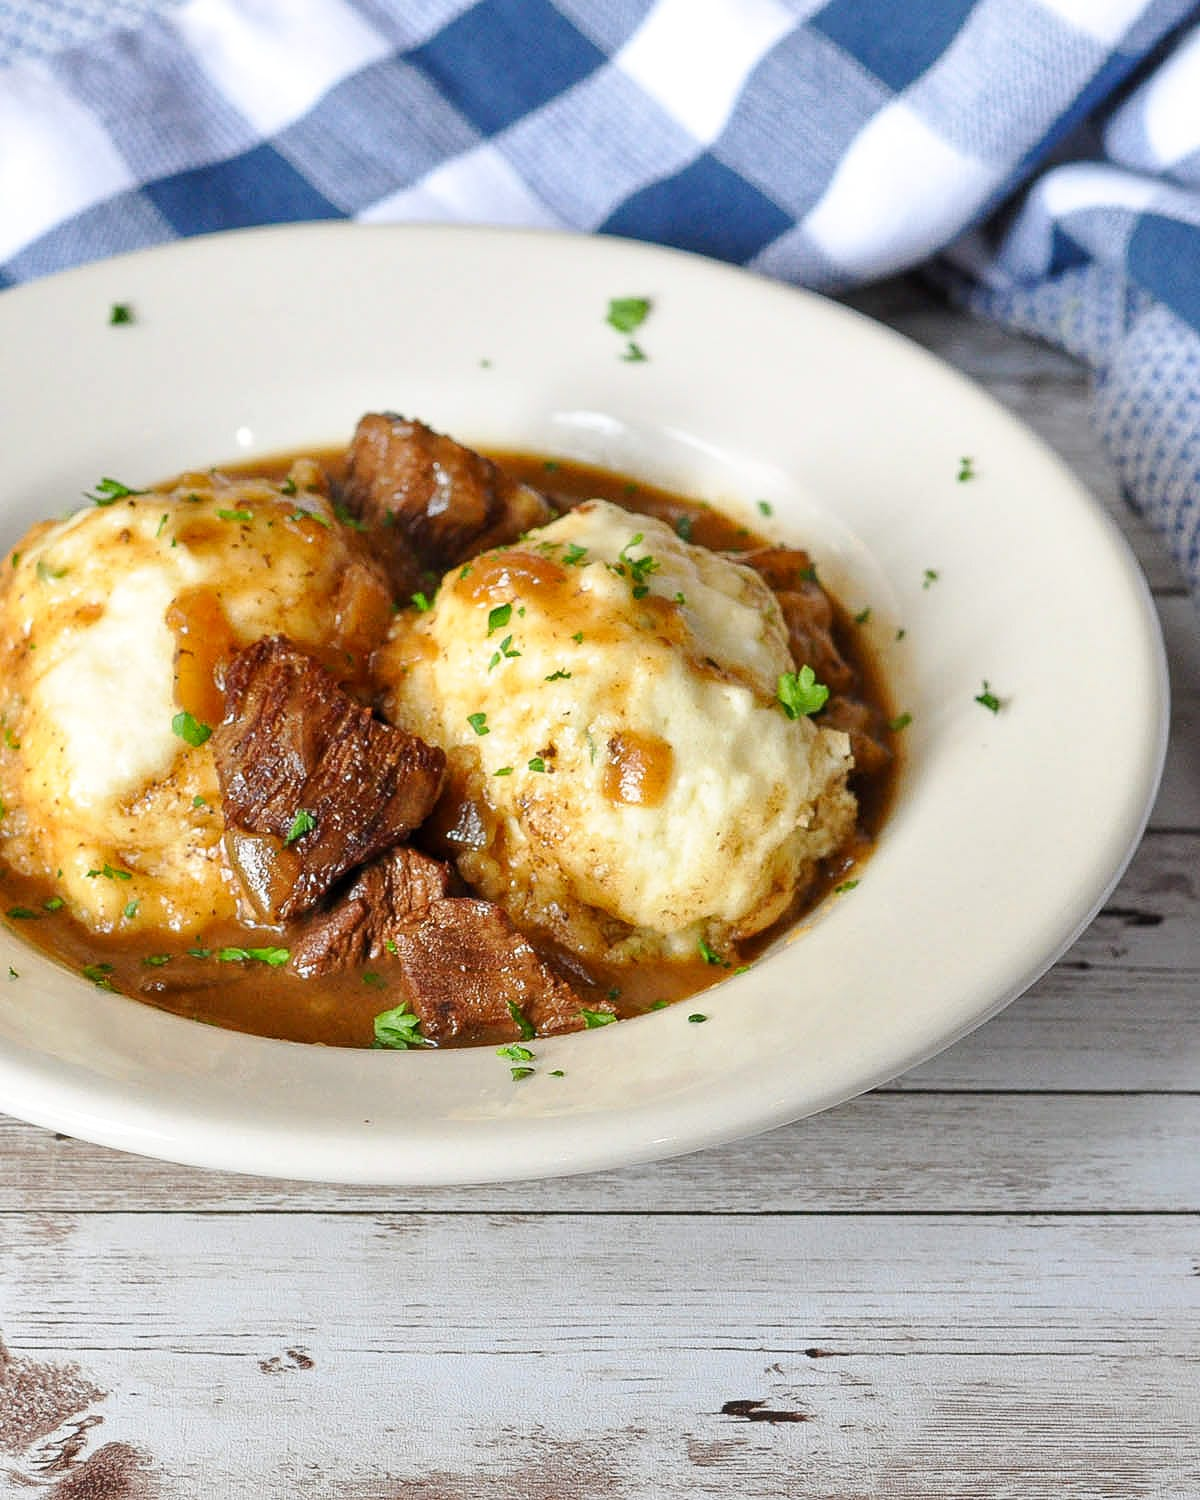 beef and dumplings in a white bowl with blue towels in the background